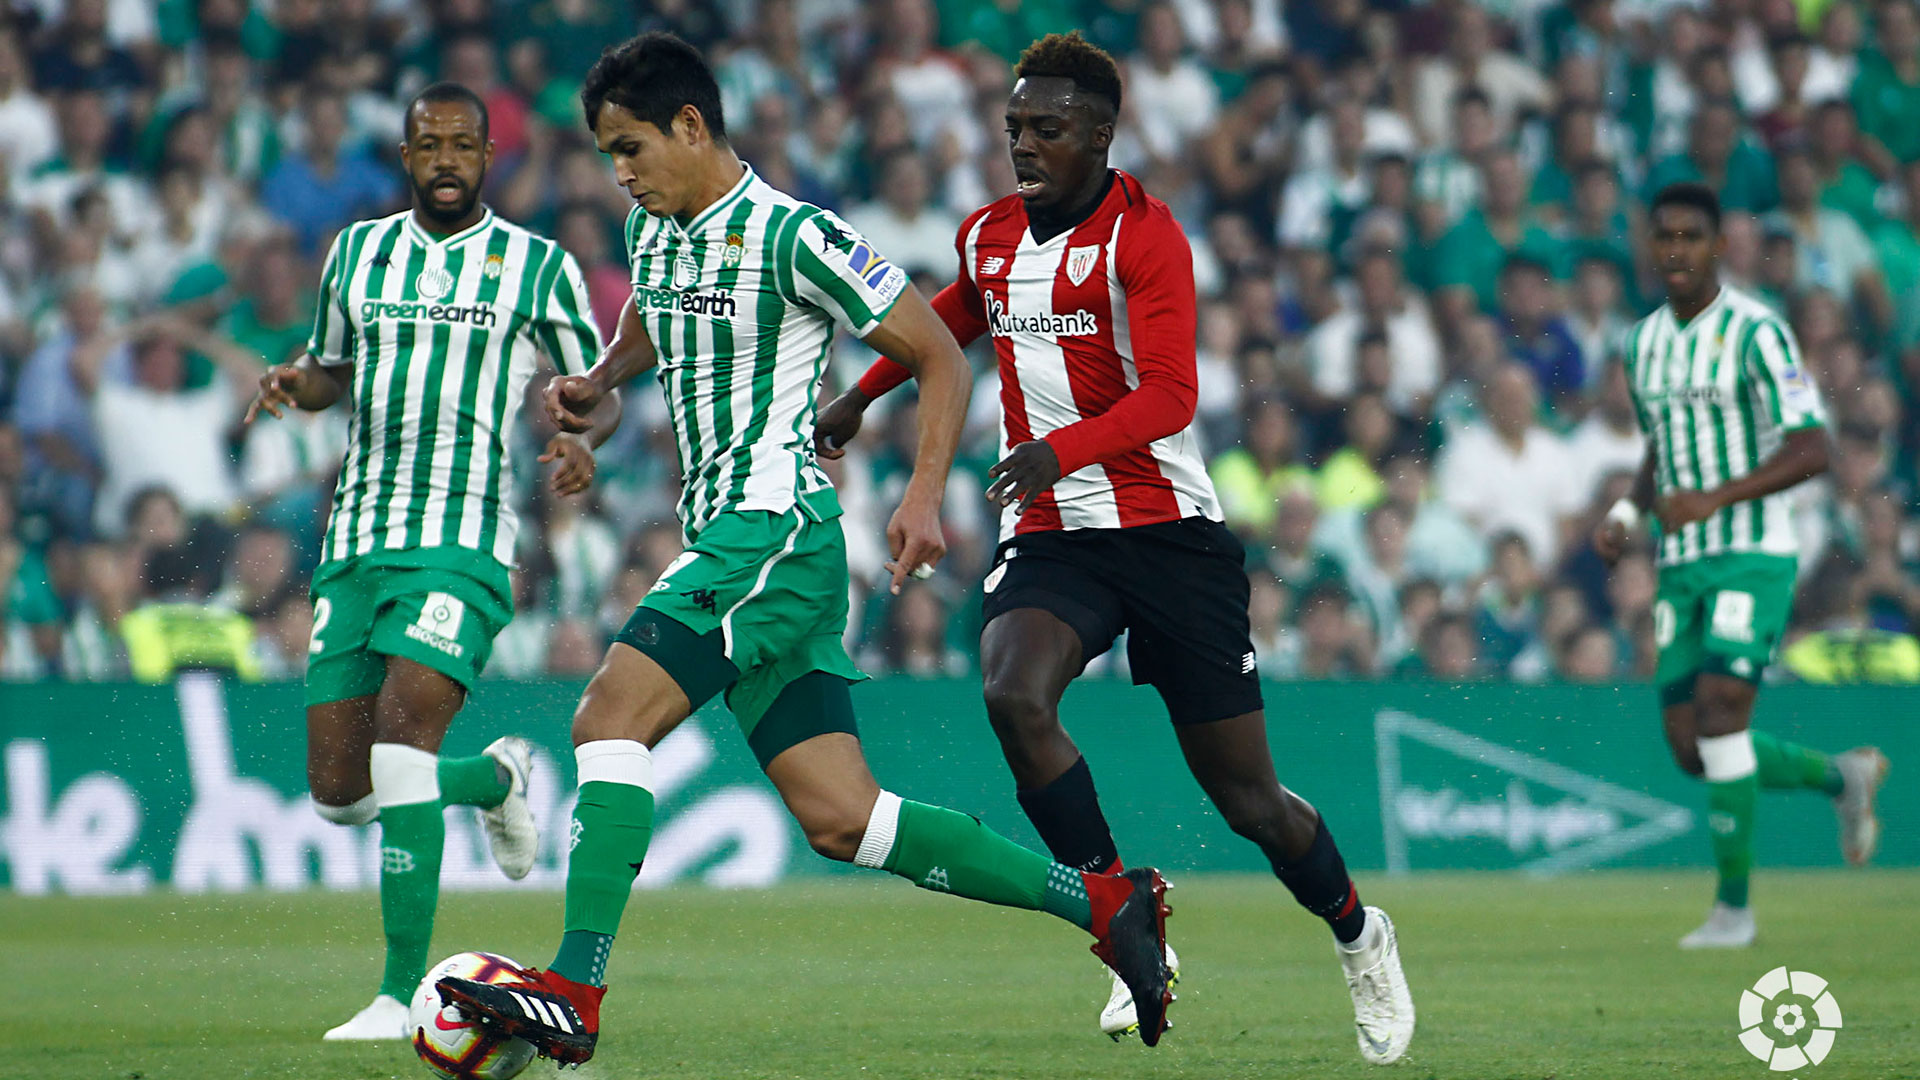 Athletic Club – Real Betis, vente de billets